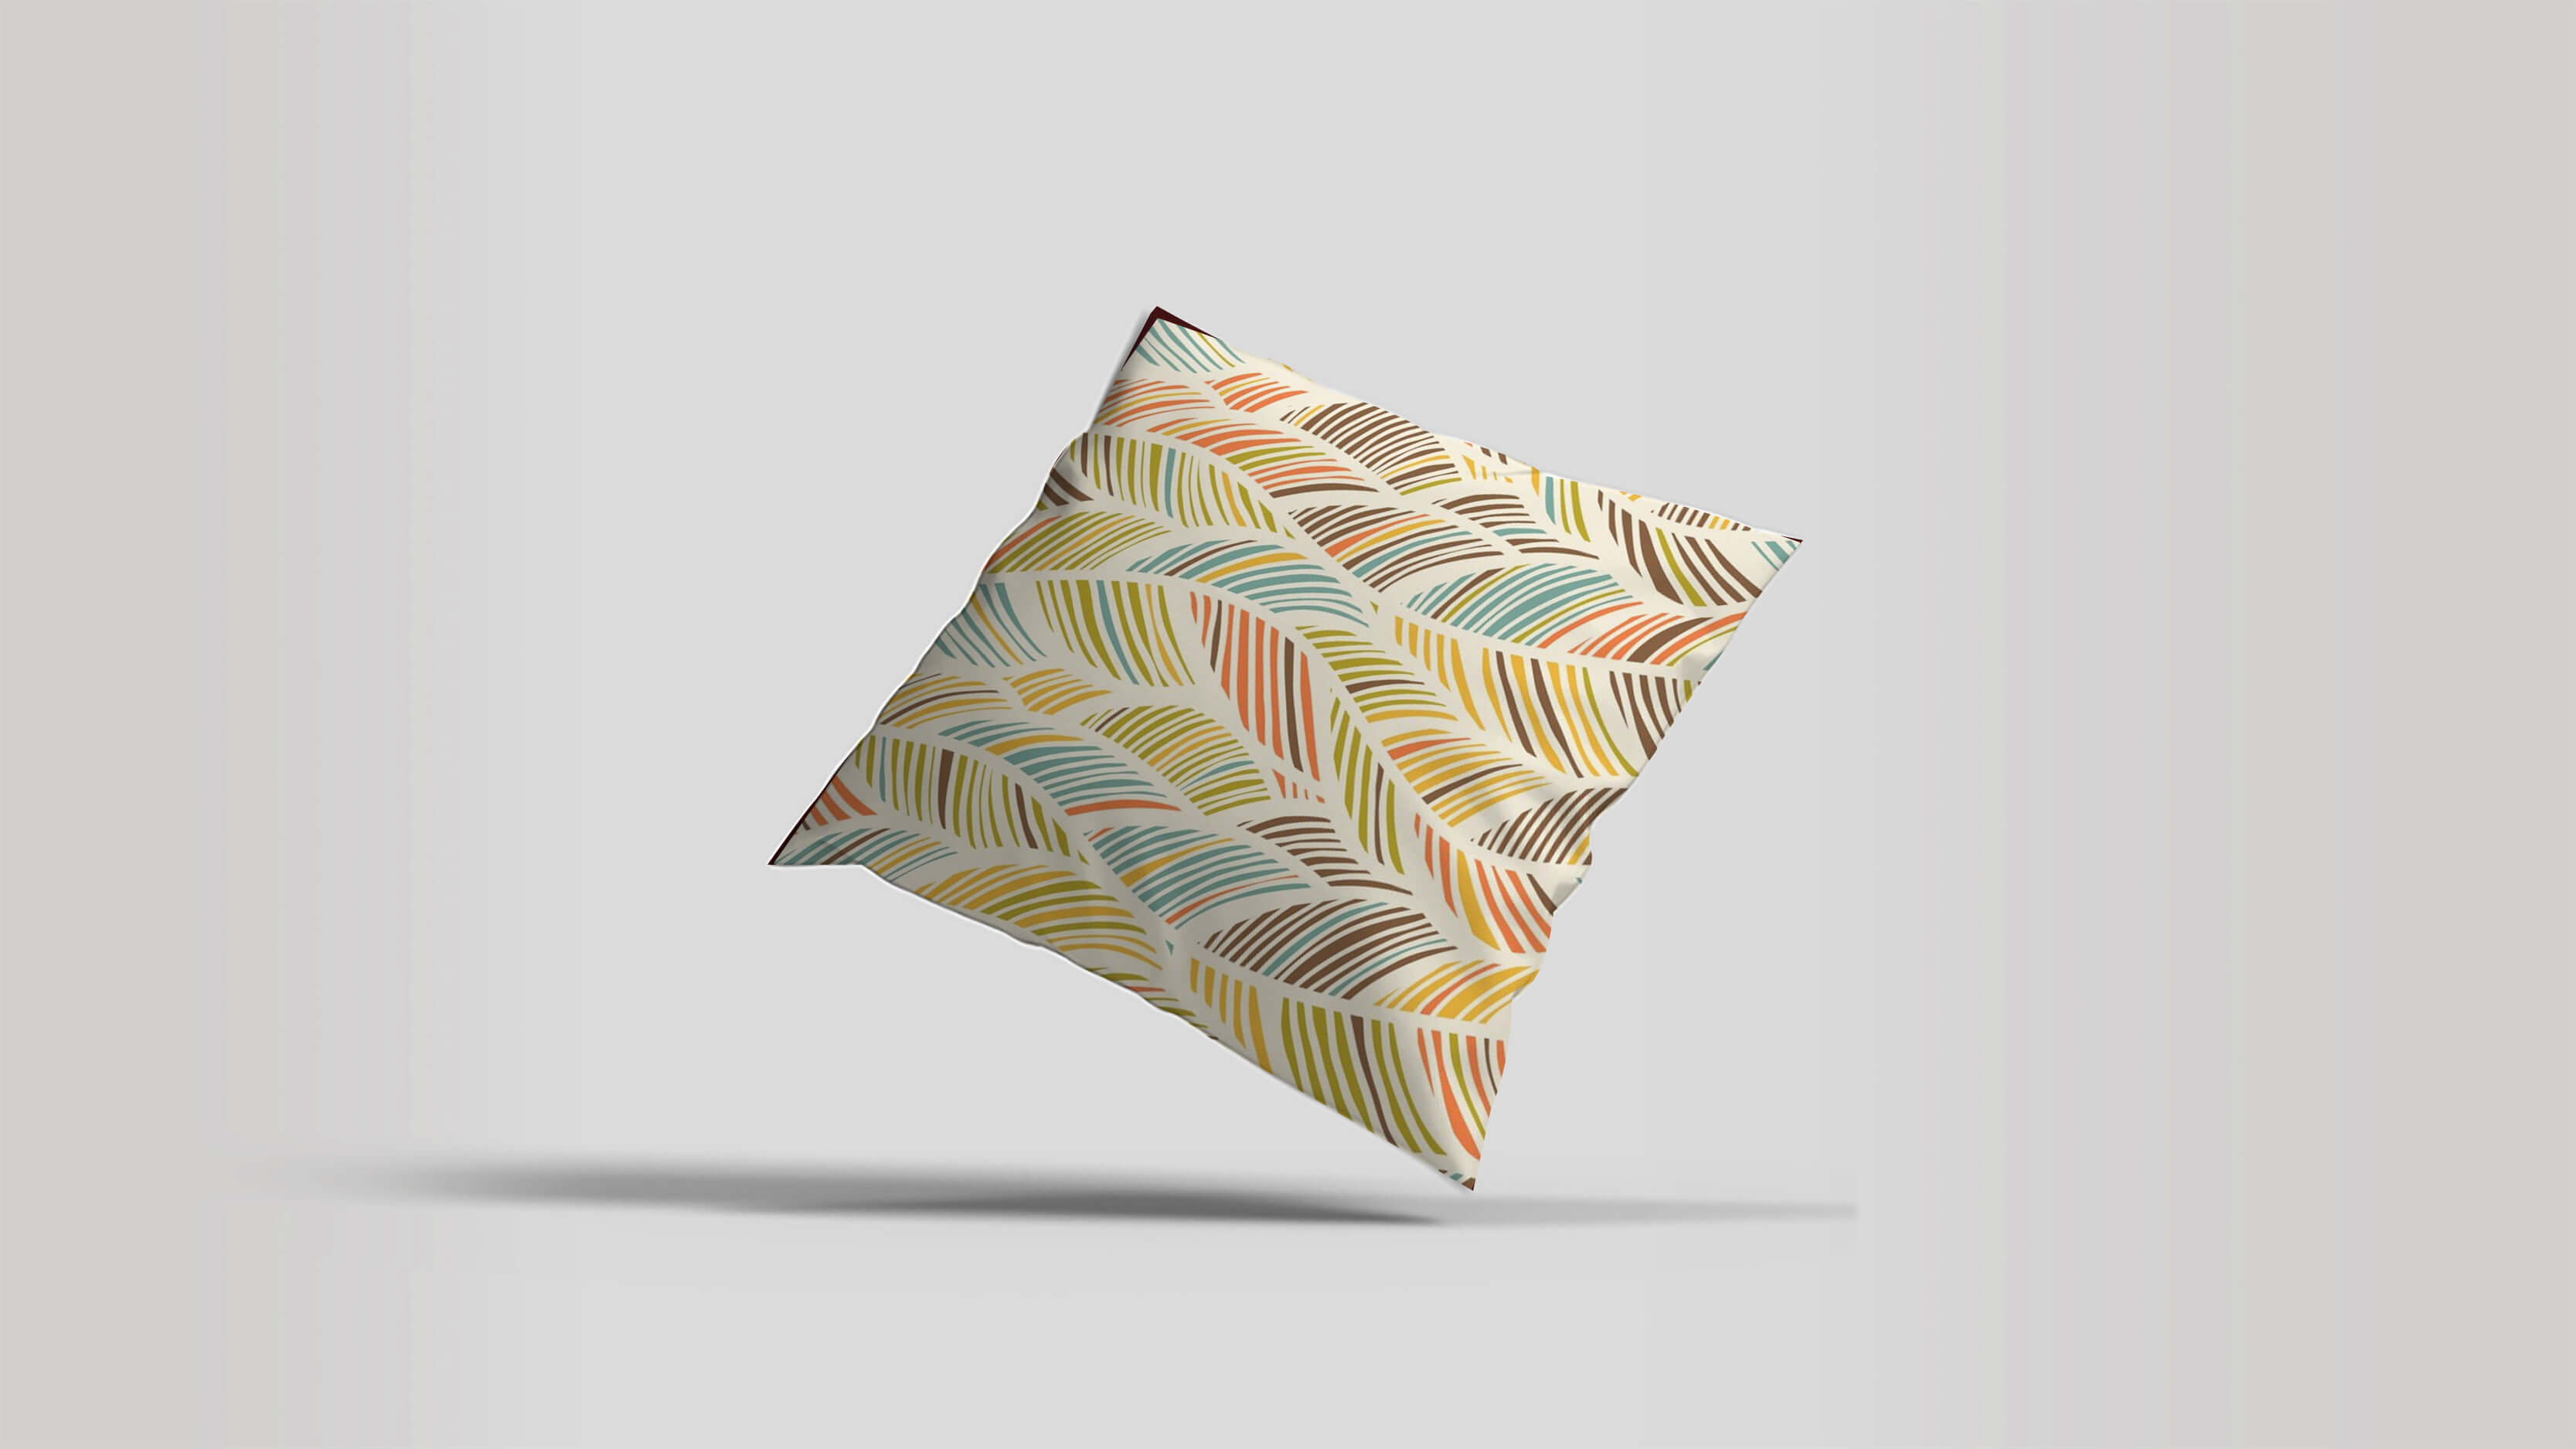 cushion-pillow-mockup-www.mockupgraphics.com